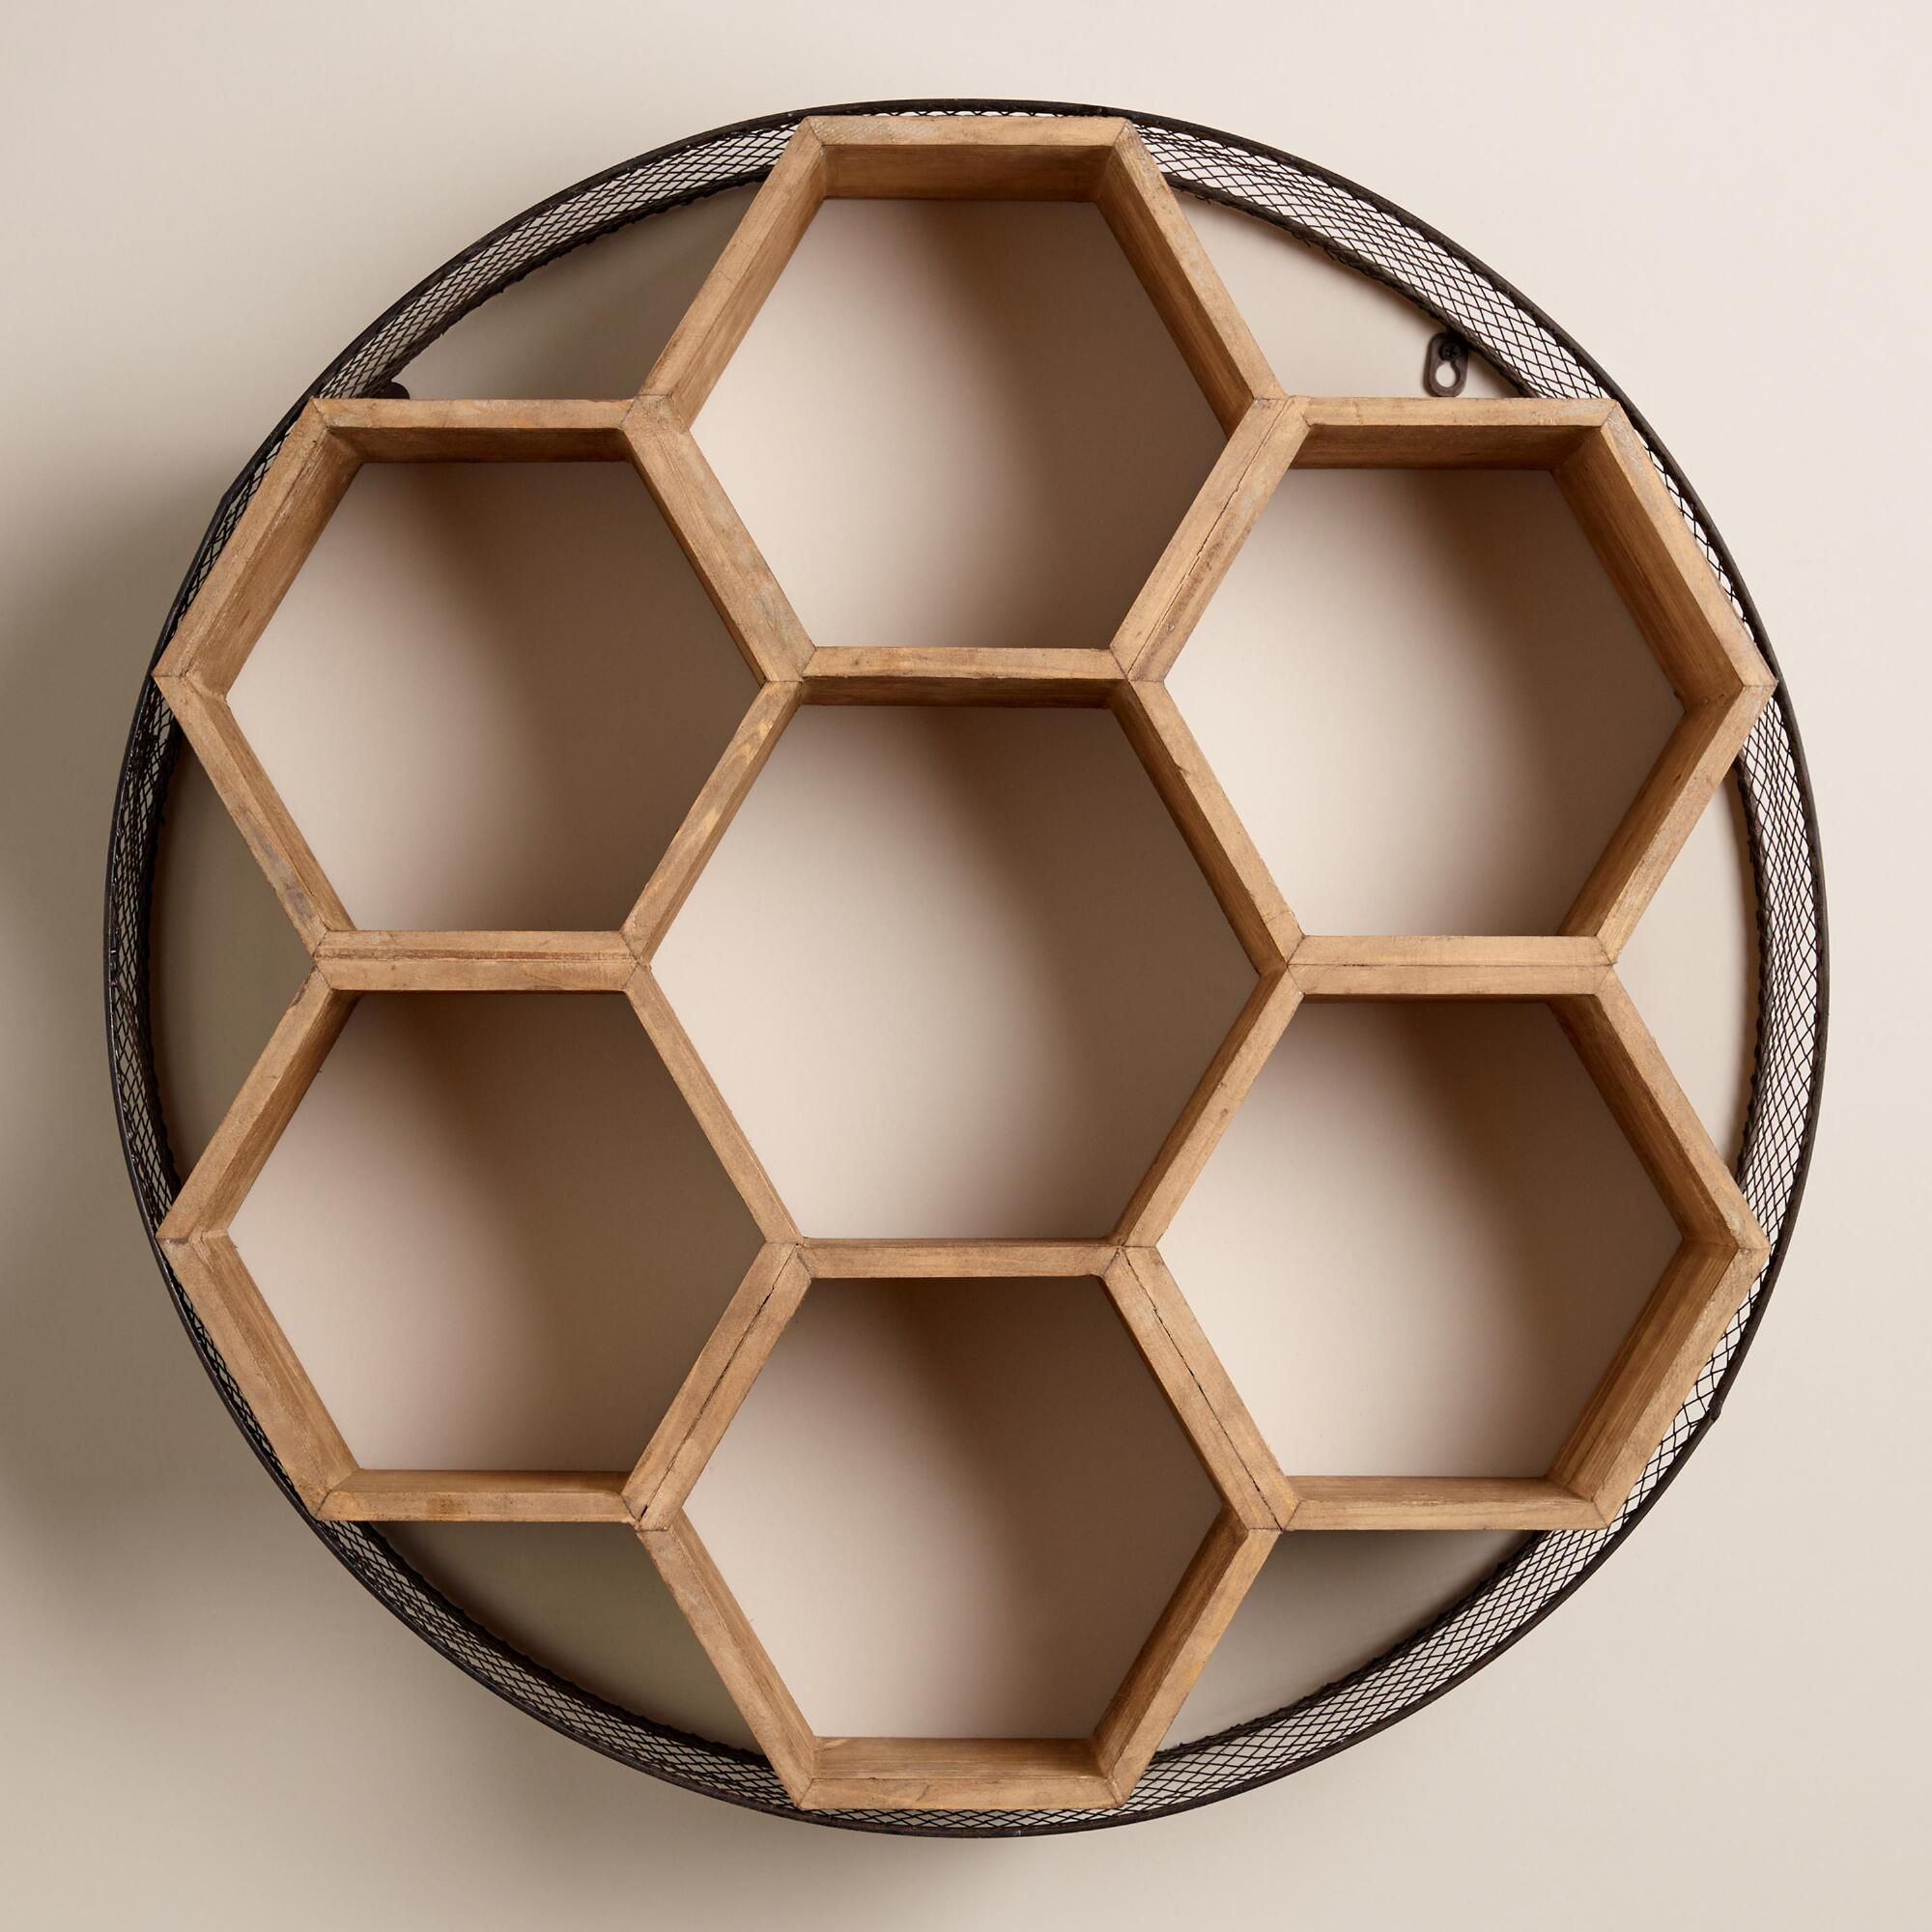 Round Wood Wall Decor round metal and wood honeycomb wall storage | chicken wire frame